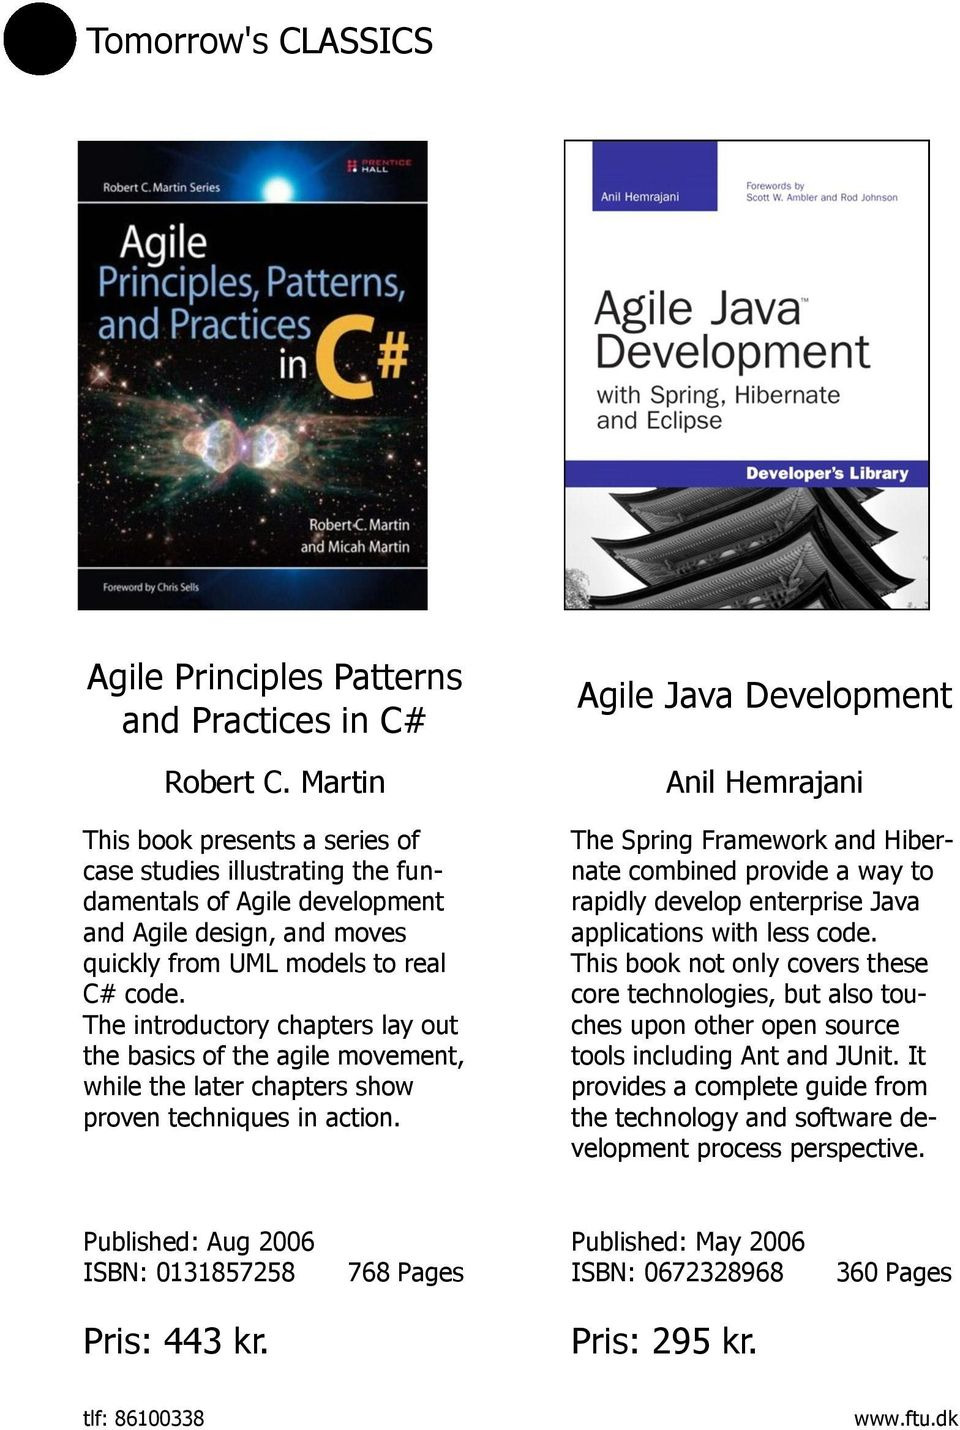 The introductory chapters lay out the basics of the agile movement, while the later chapters show proven techniques in action.